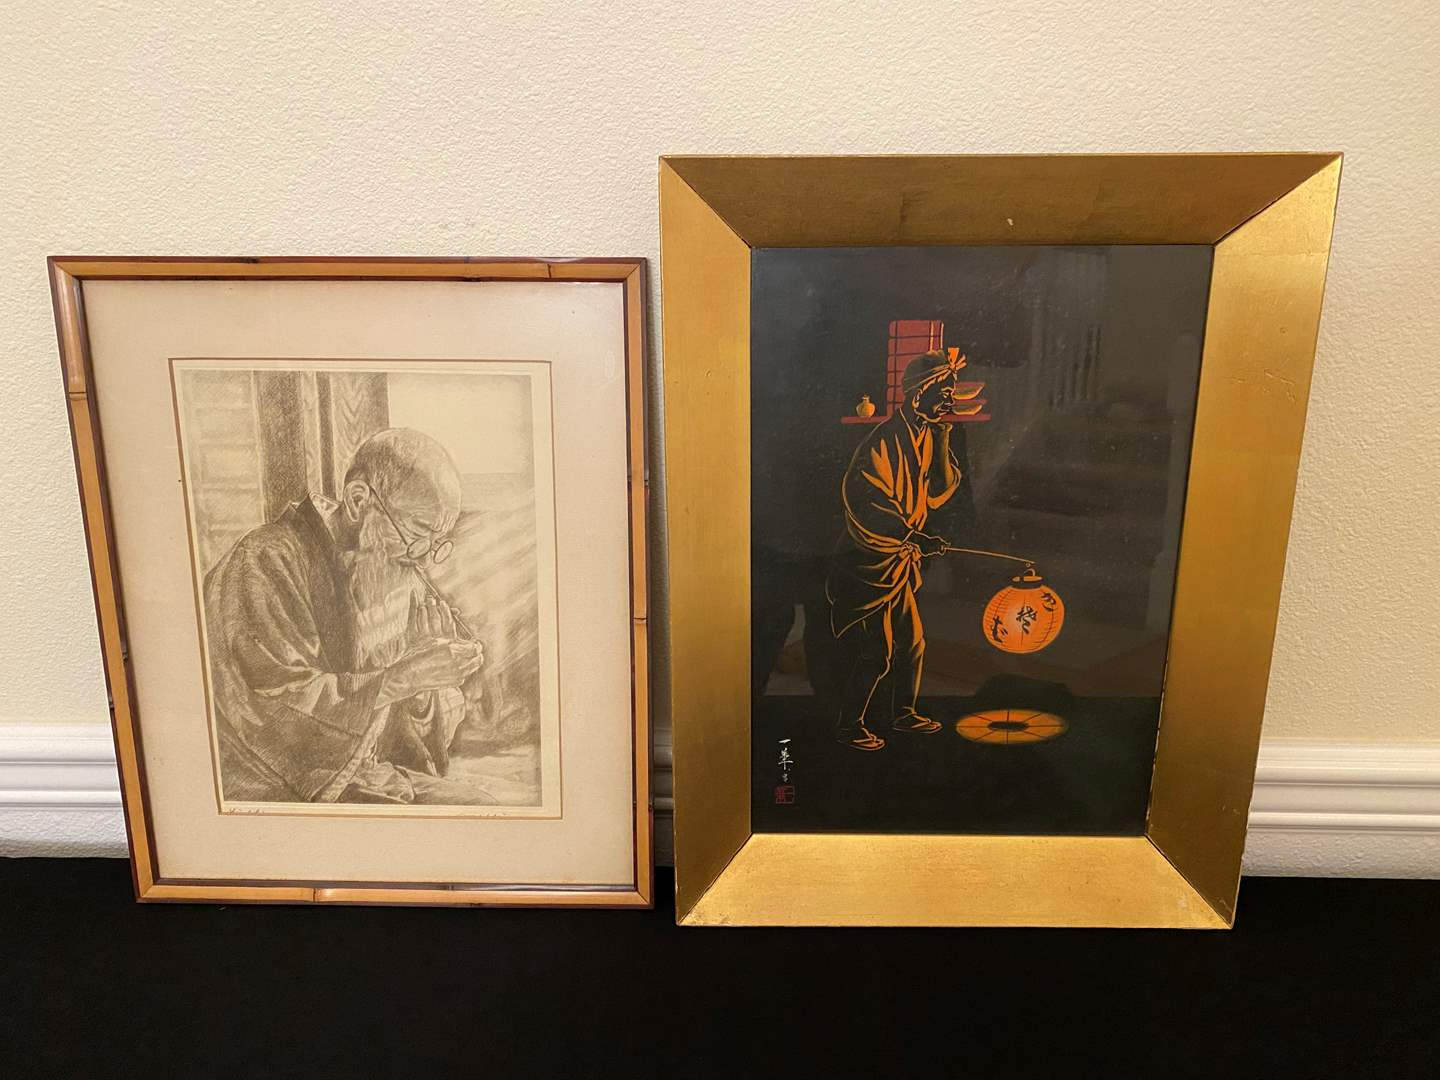 Lot # 45 - Signed Asian etching by Willy Seiler, Gold Framed Asian Artwork  (main image)